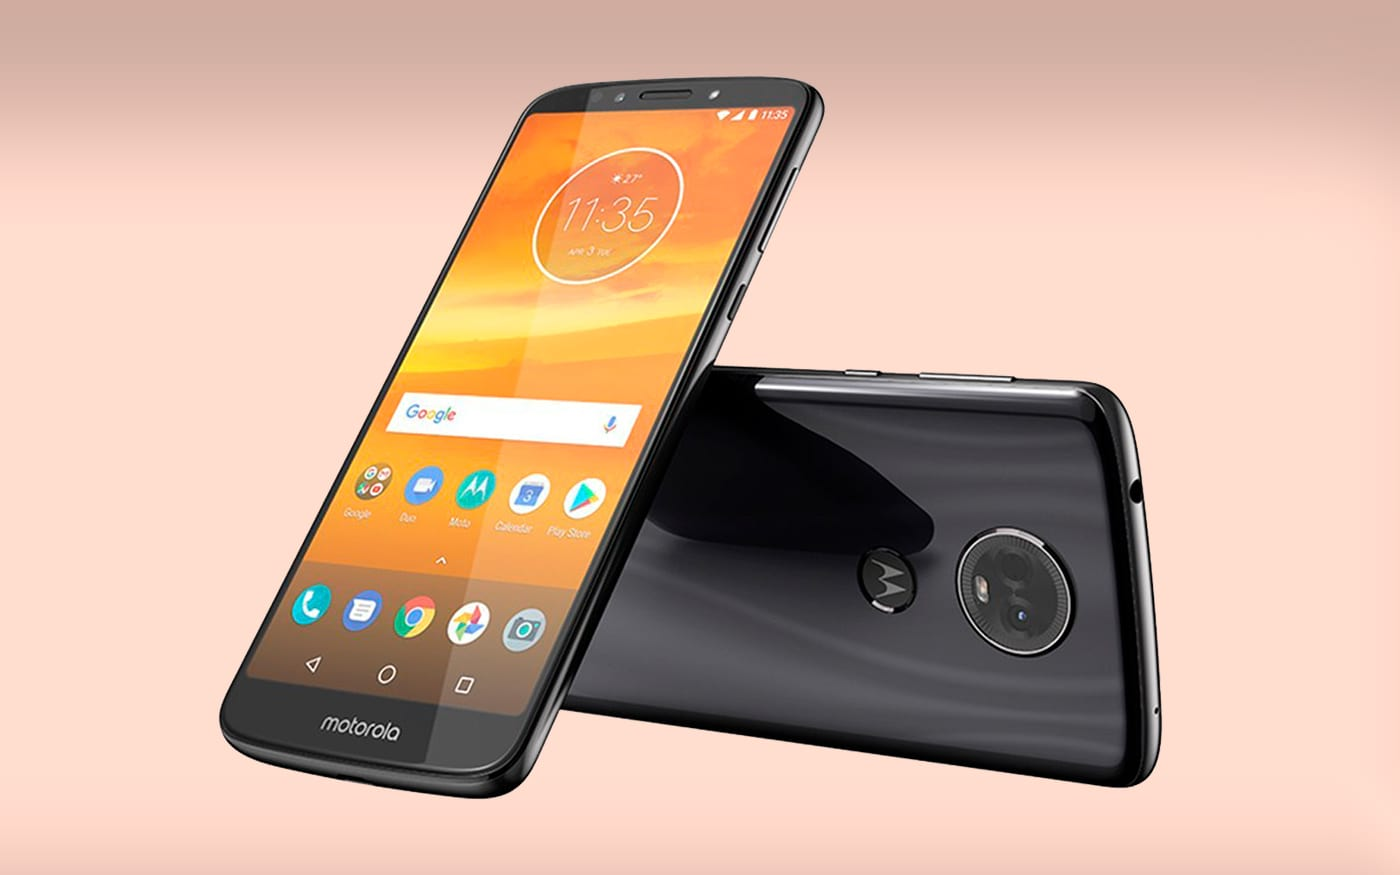 Moto E6 Plus com Helio P22 SoC, 2 GB de RAM e Android 9 Pie aparece no Geekbench